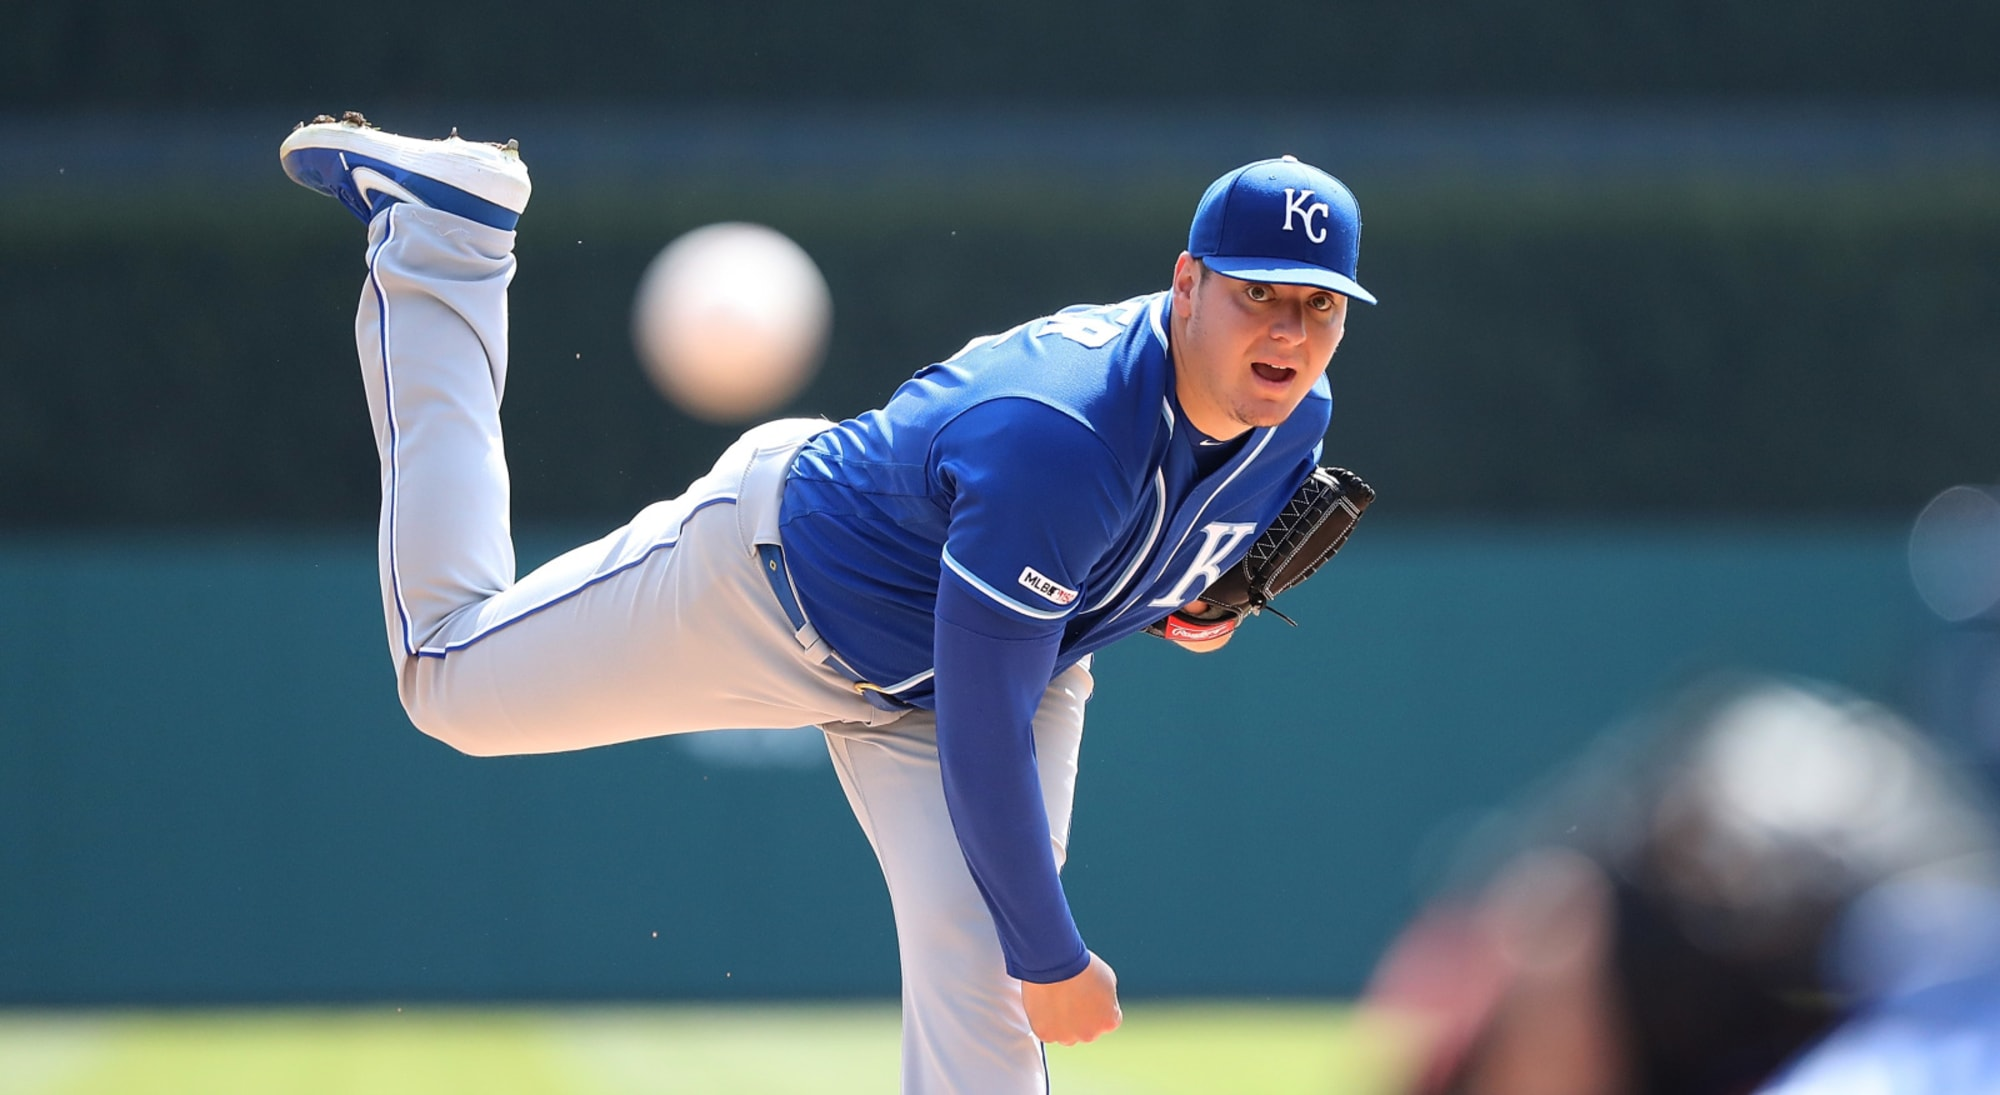 KC Royals: Brad Keller may benefit from sitting out the opener